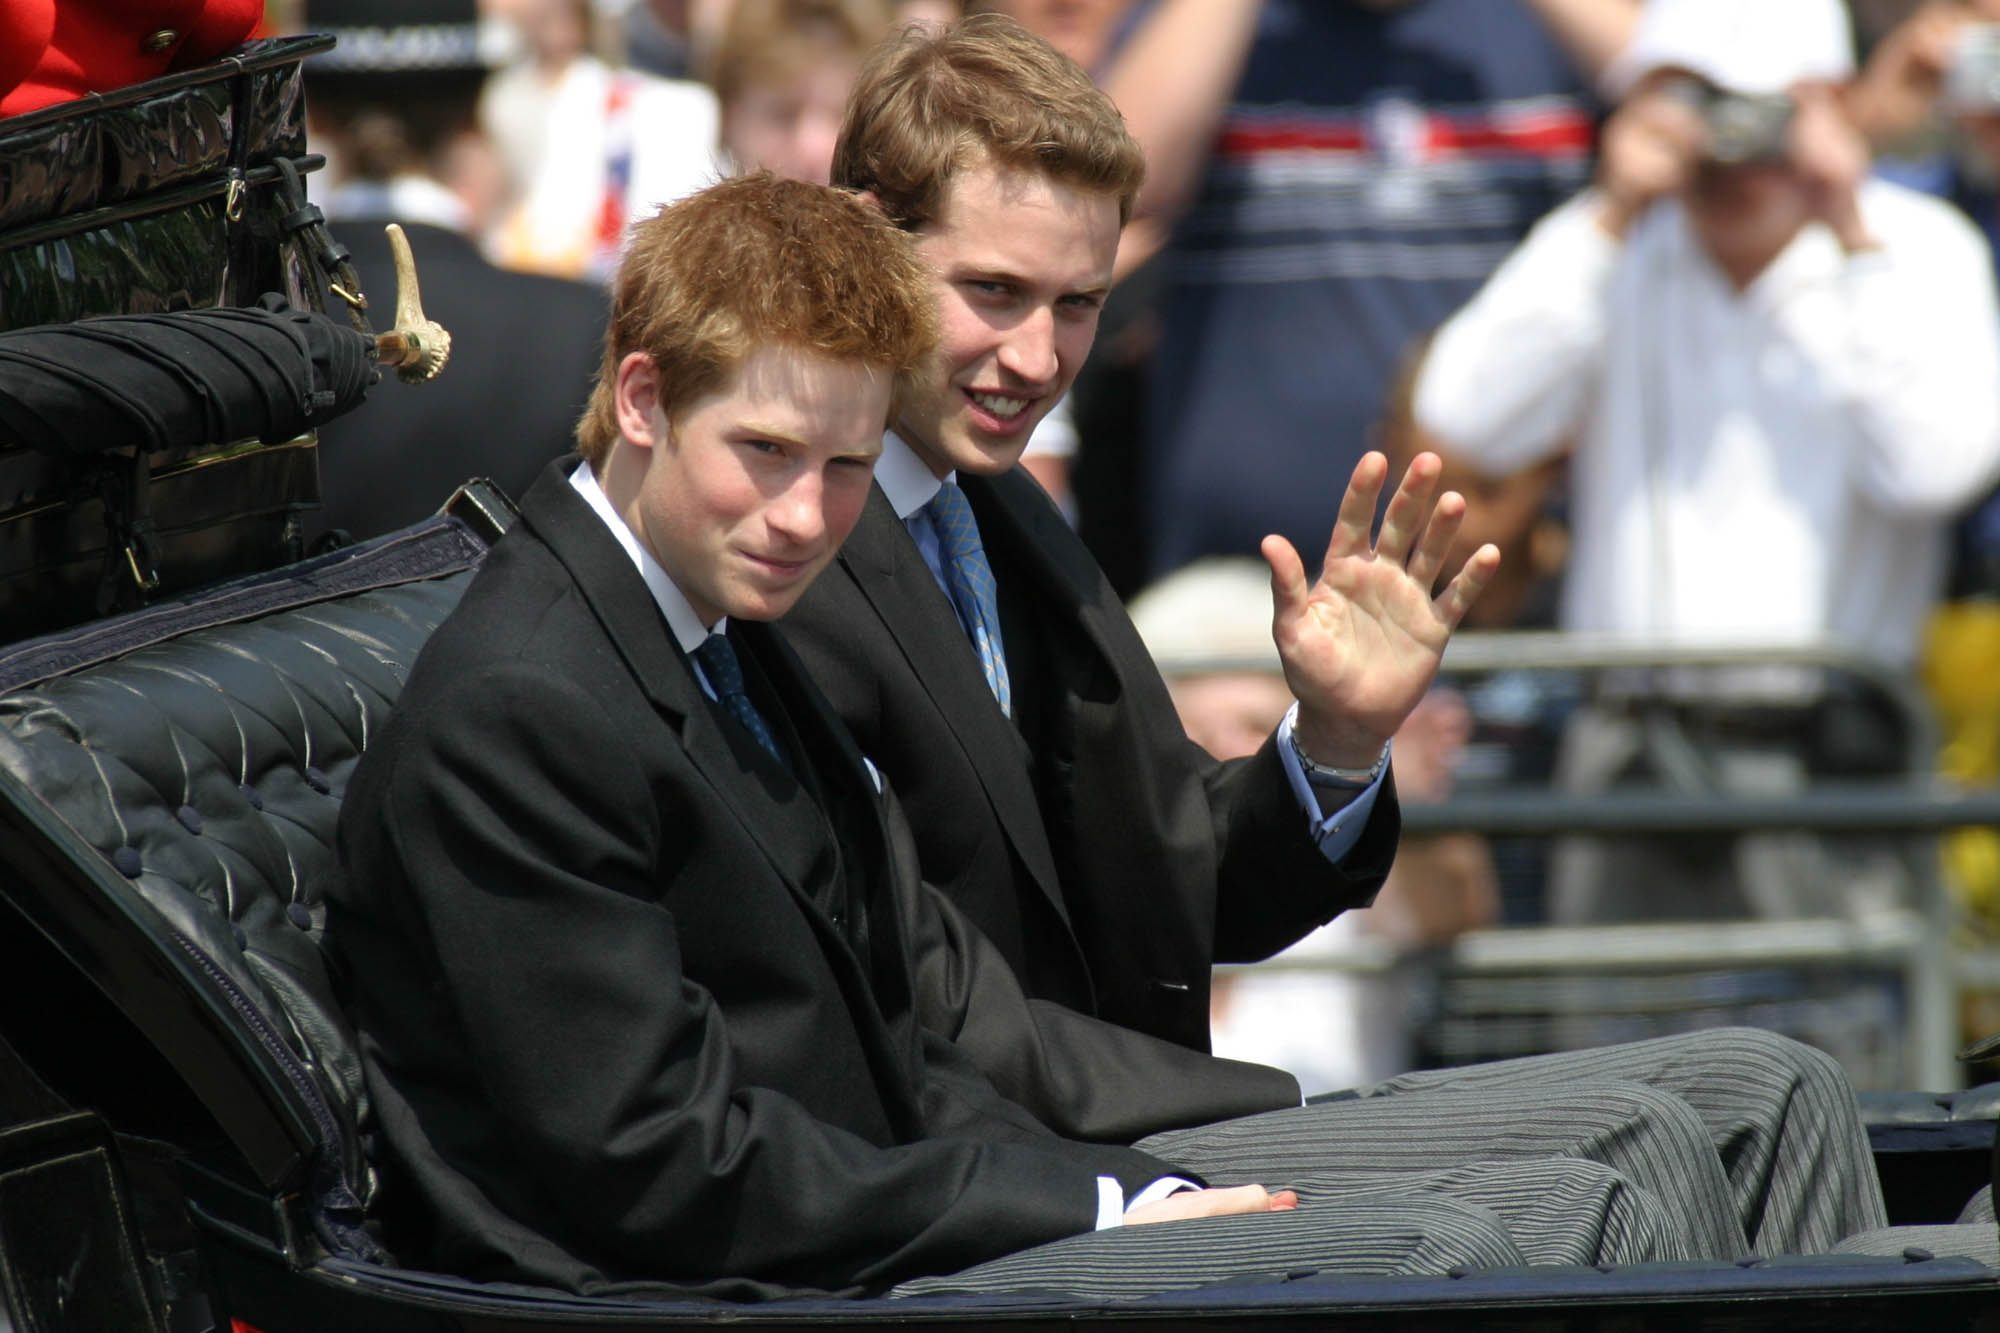 Prince Harry, left, and Prince William in a carriage return to Buckingham Palace from Horse Guards Parade